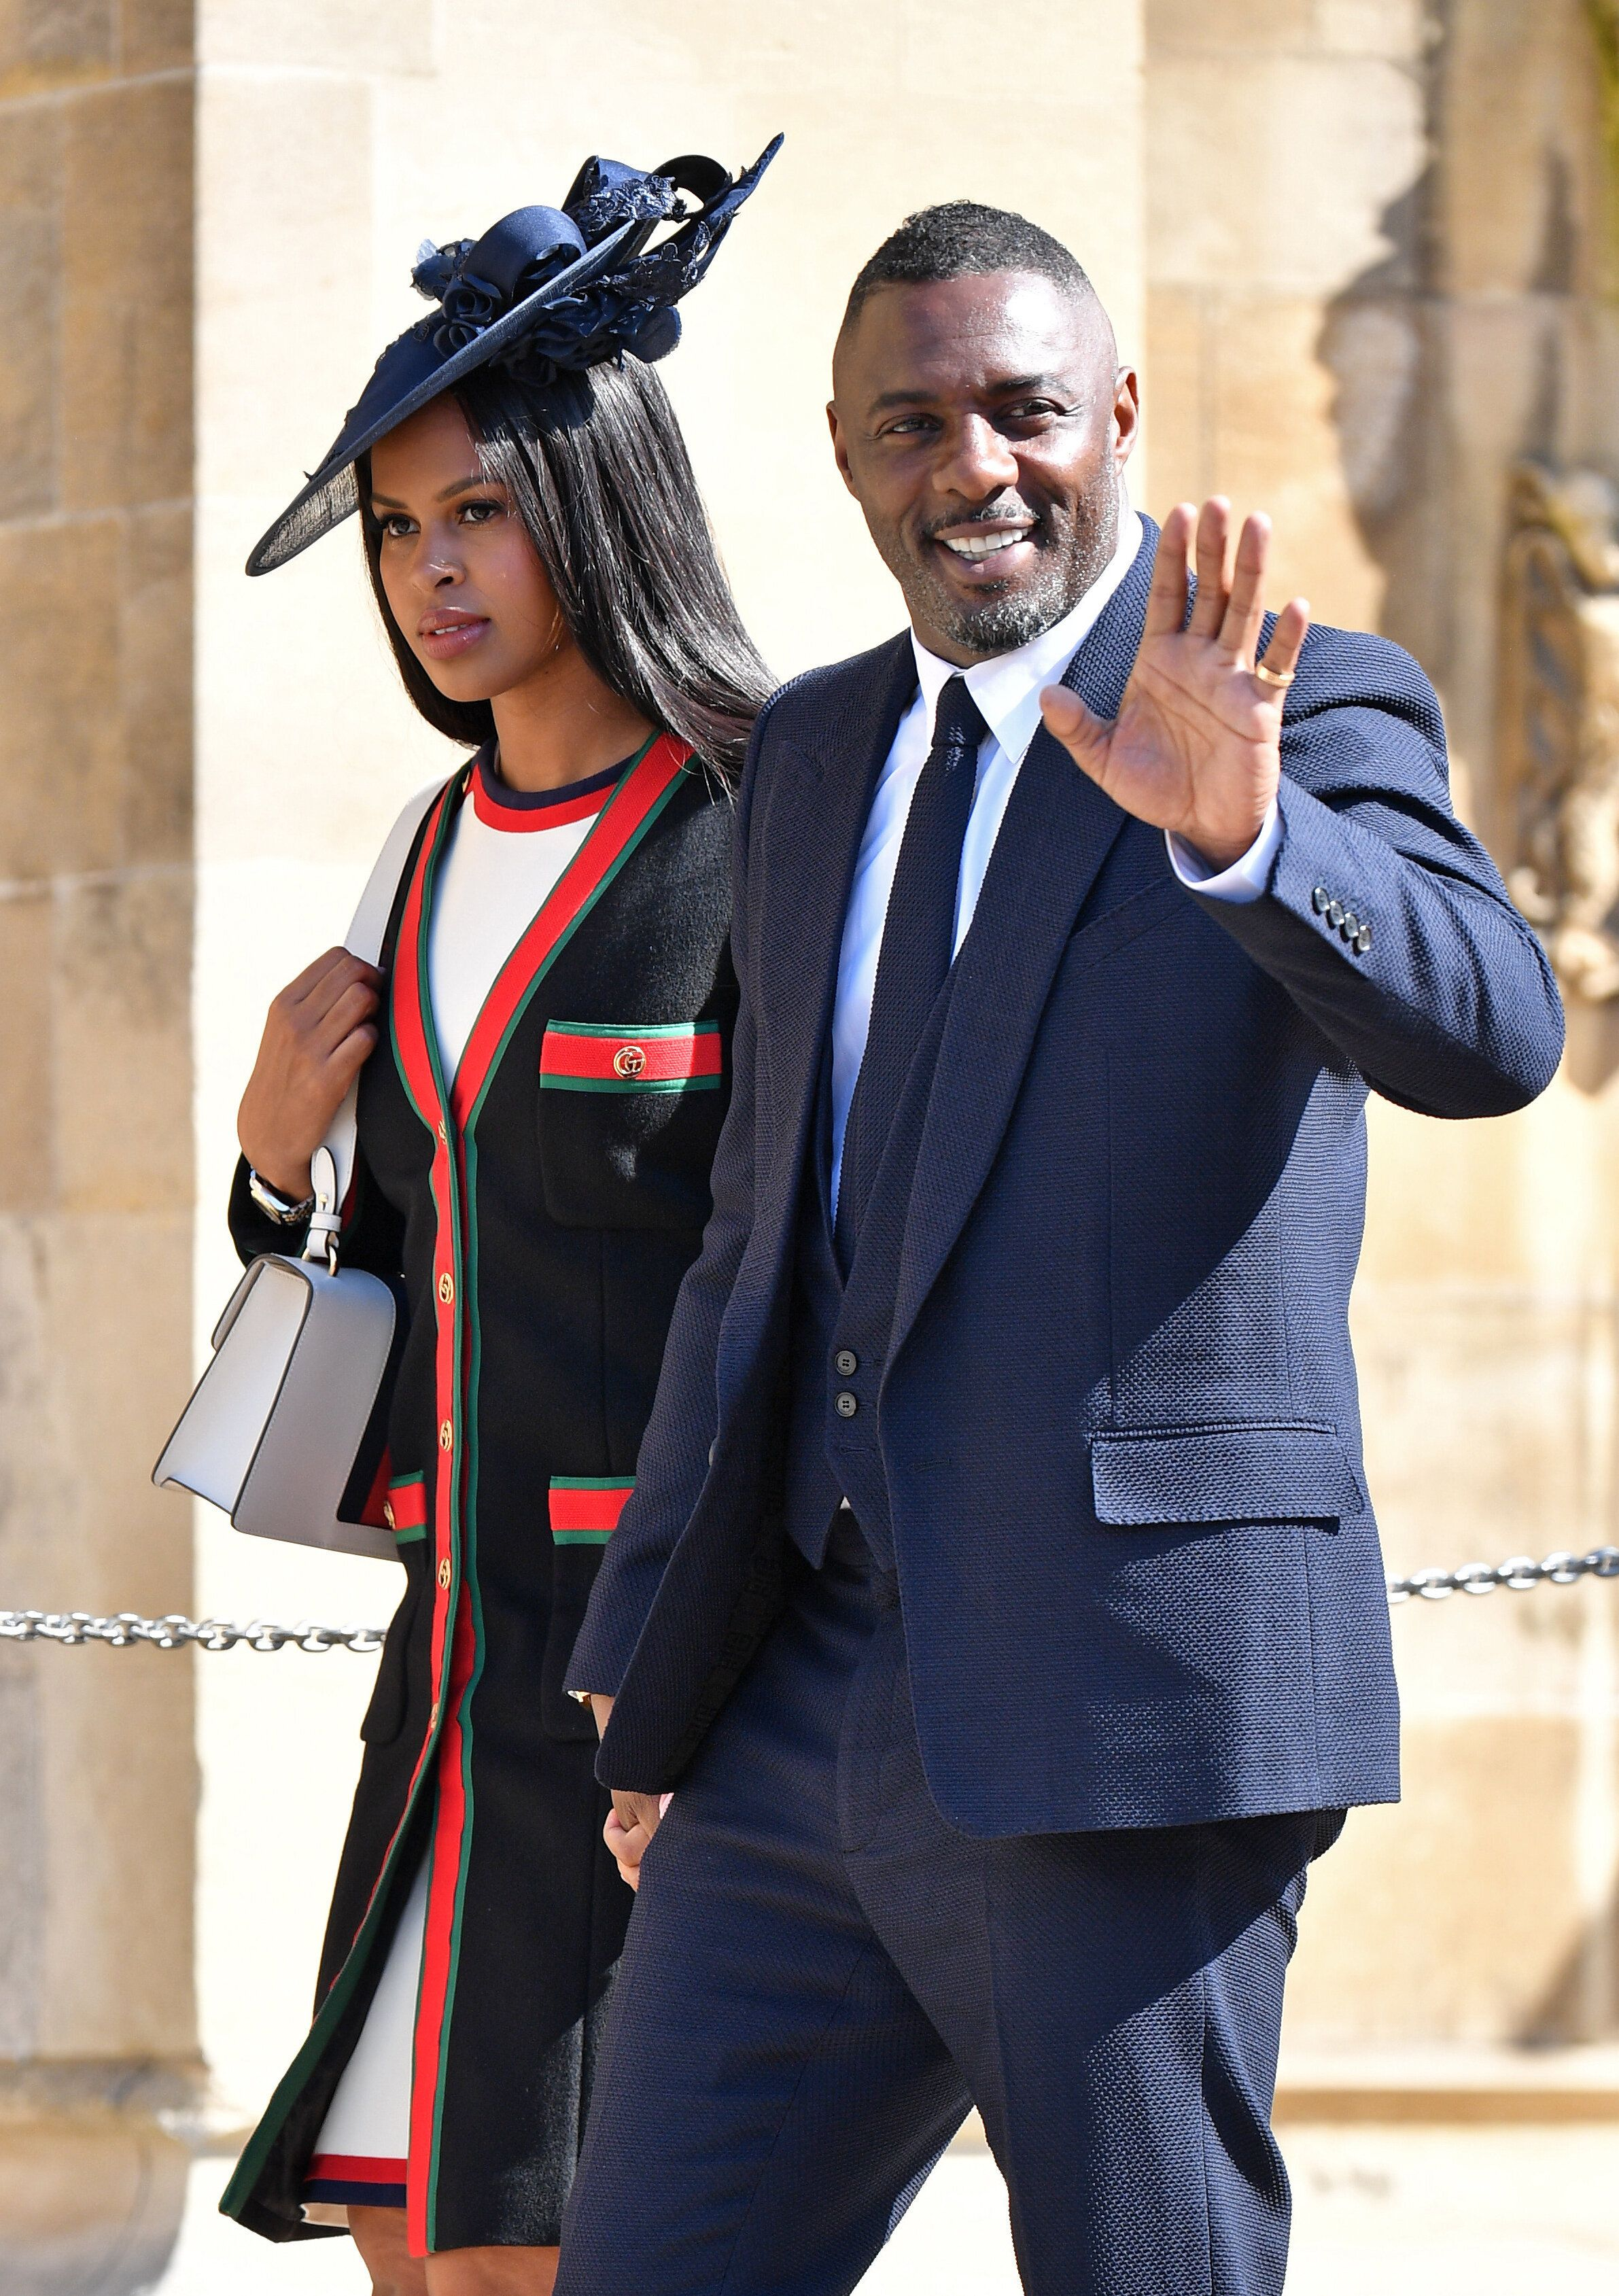 WINDSOR, UNITED KINGDOM - MAY 19: (EMBARGOED FOR PUBLICATION IN UK NEWSPAPERS UNTIL 24 HOURS AFTER CREATE DATE AND TIME) Sabrina Dhowre and Idris Elba attend the wedding of Prince Harry to Ms Meghan Markle at St George's Chapel, Windsor Castle on May 19, 2018 in Windsor, England. Prince Henry Charles Albert David of Wales marries Ms. Meghan Markle in a service at St George's Chapel inside the grounds of Windsor Castle. Among the guests were 2200 members of the public, the royal family and Ms. Markle's Mother Doria Ragland. (Photo by Pool/Max Mumby/Getty Images)